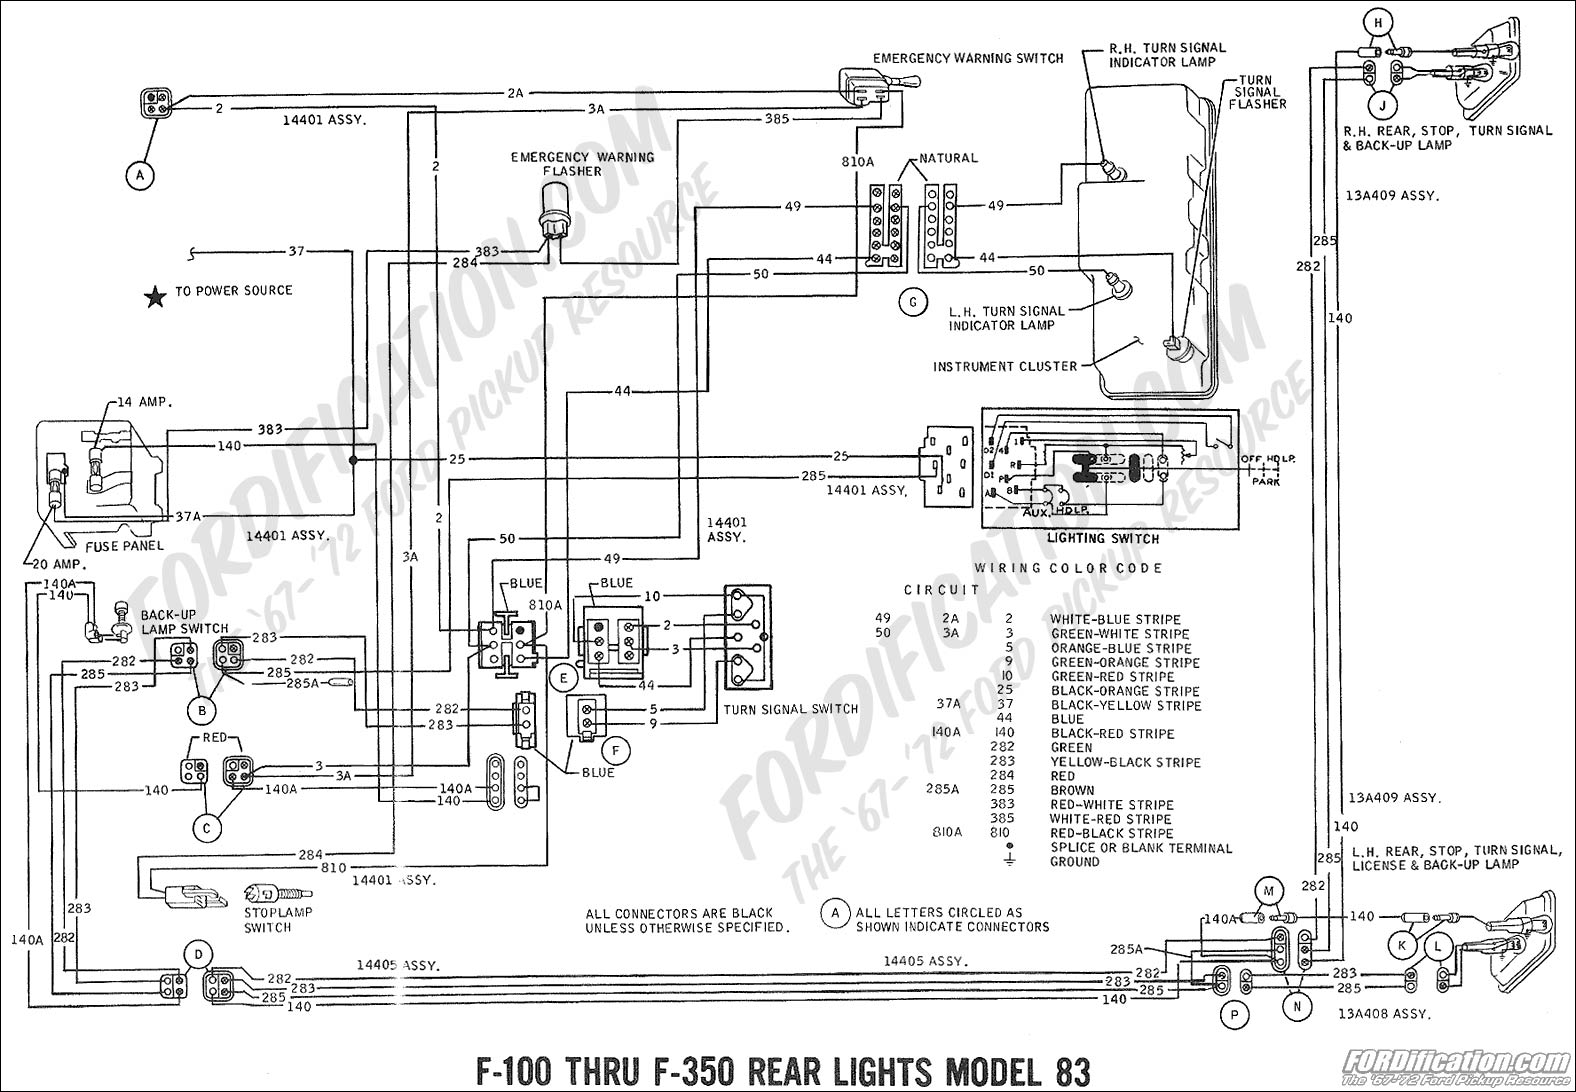 ford truck technical drawings and schematics section h wiring diagrams 1989 ford mustang alternator wiring diagram 2002 ford mustang alternator wiring diagram